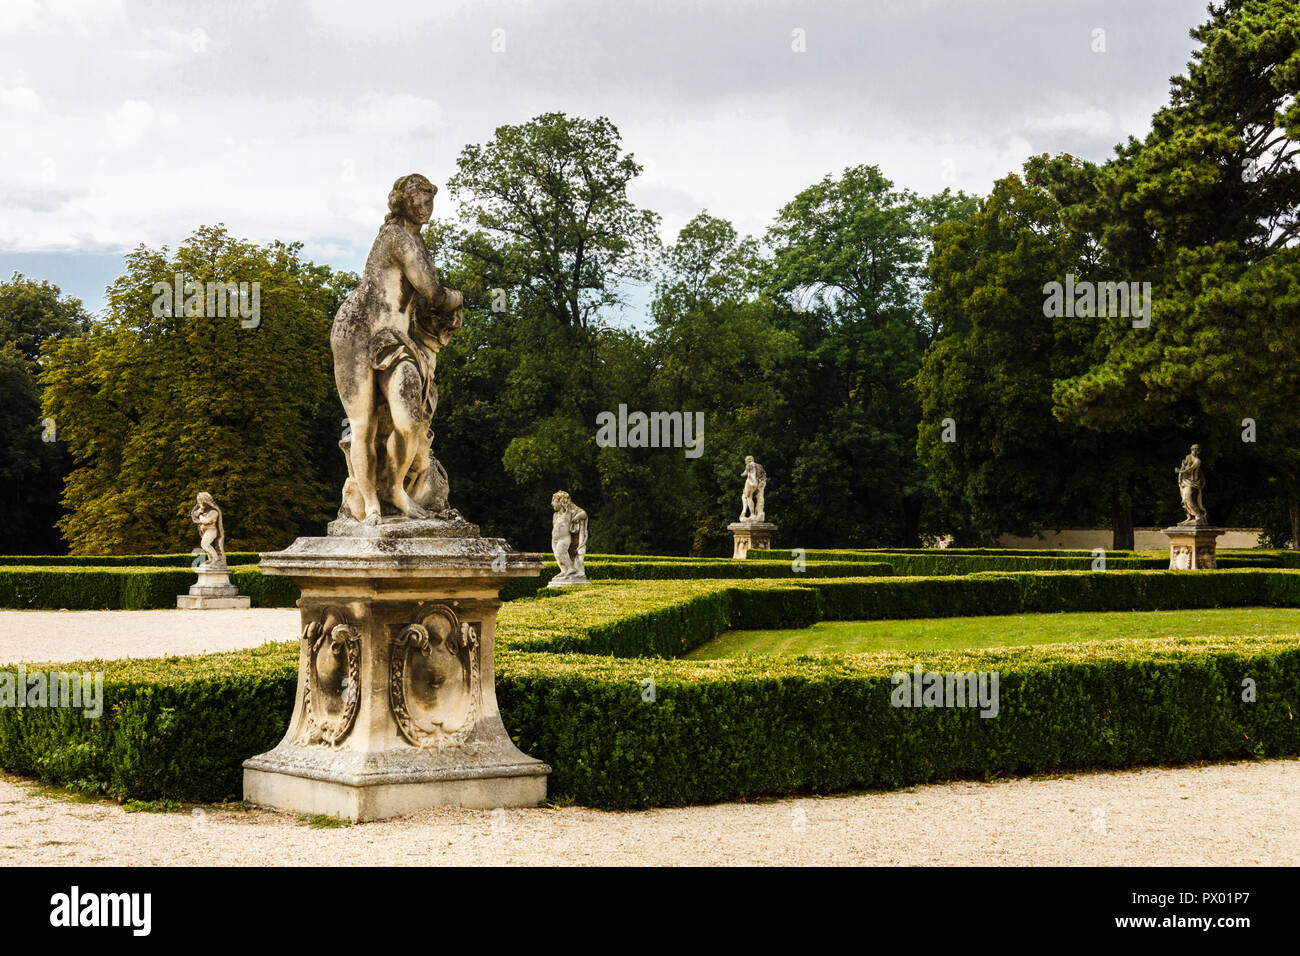 Statues at the gardens of Slavkov chateau, Austerlitz, Czech Republic - Stock Image